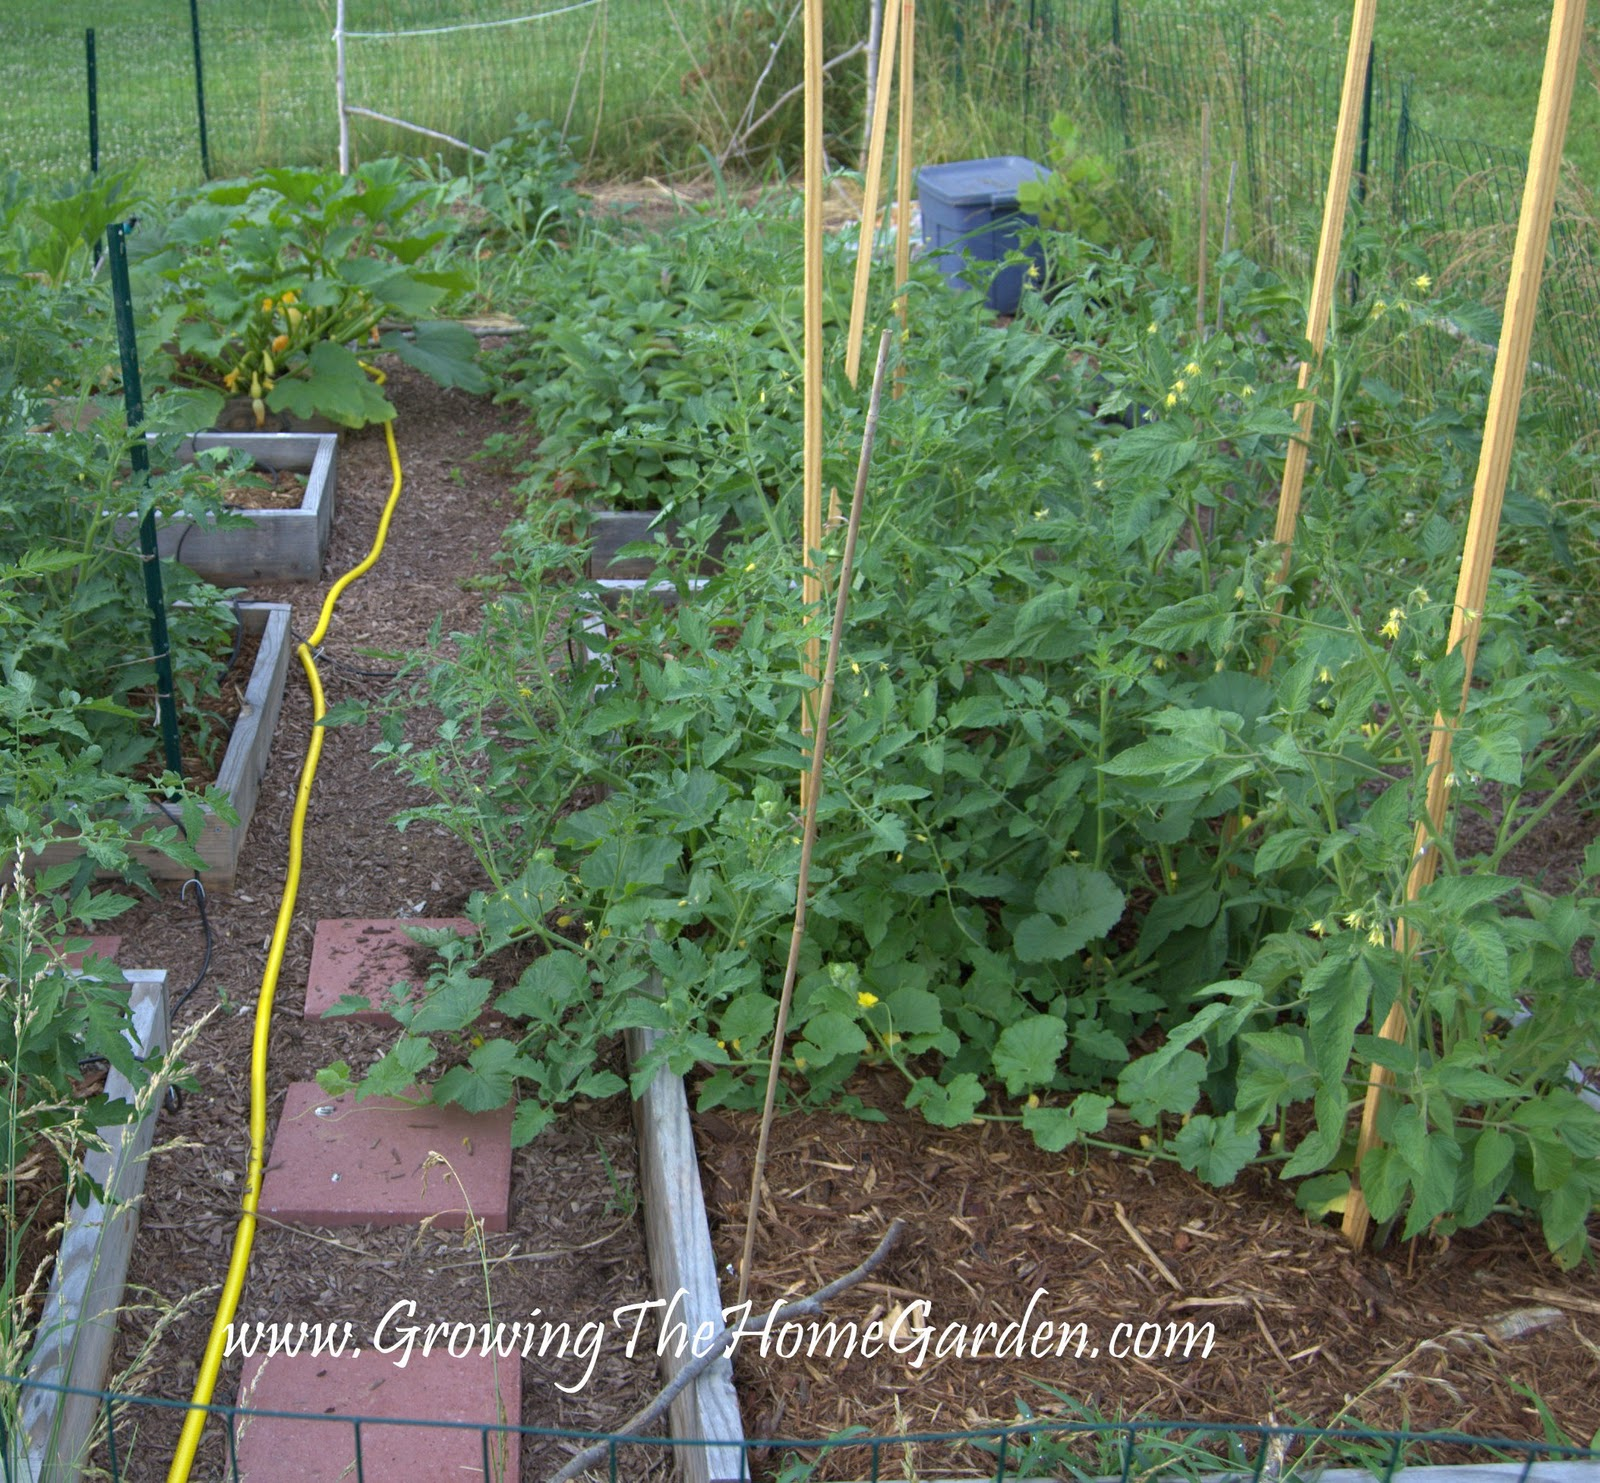 Delightful 11 Tips To Consider When Designing A Raised Bed Vegetable Garden Layout